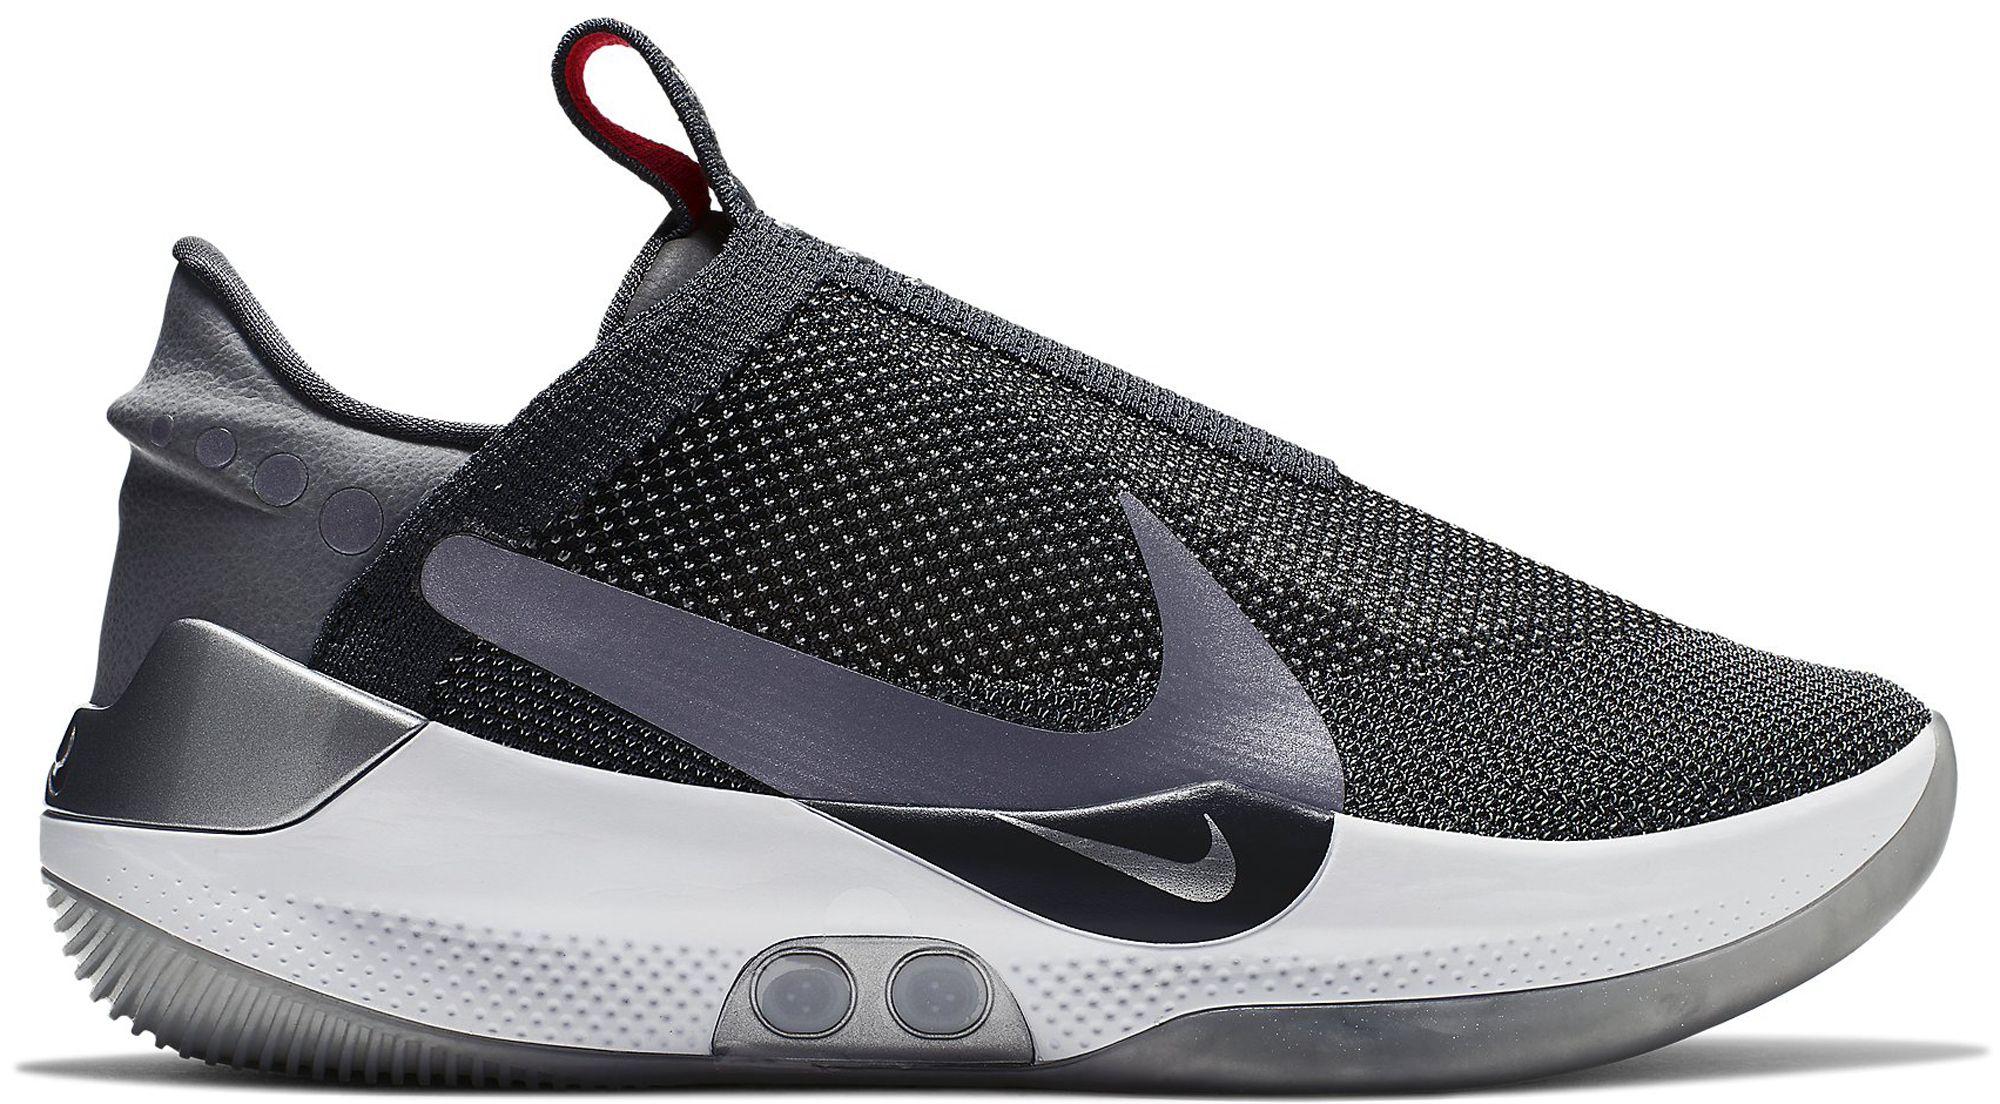 Nike Adapt BB Dark Grey